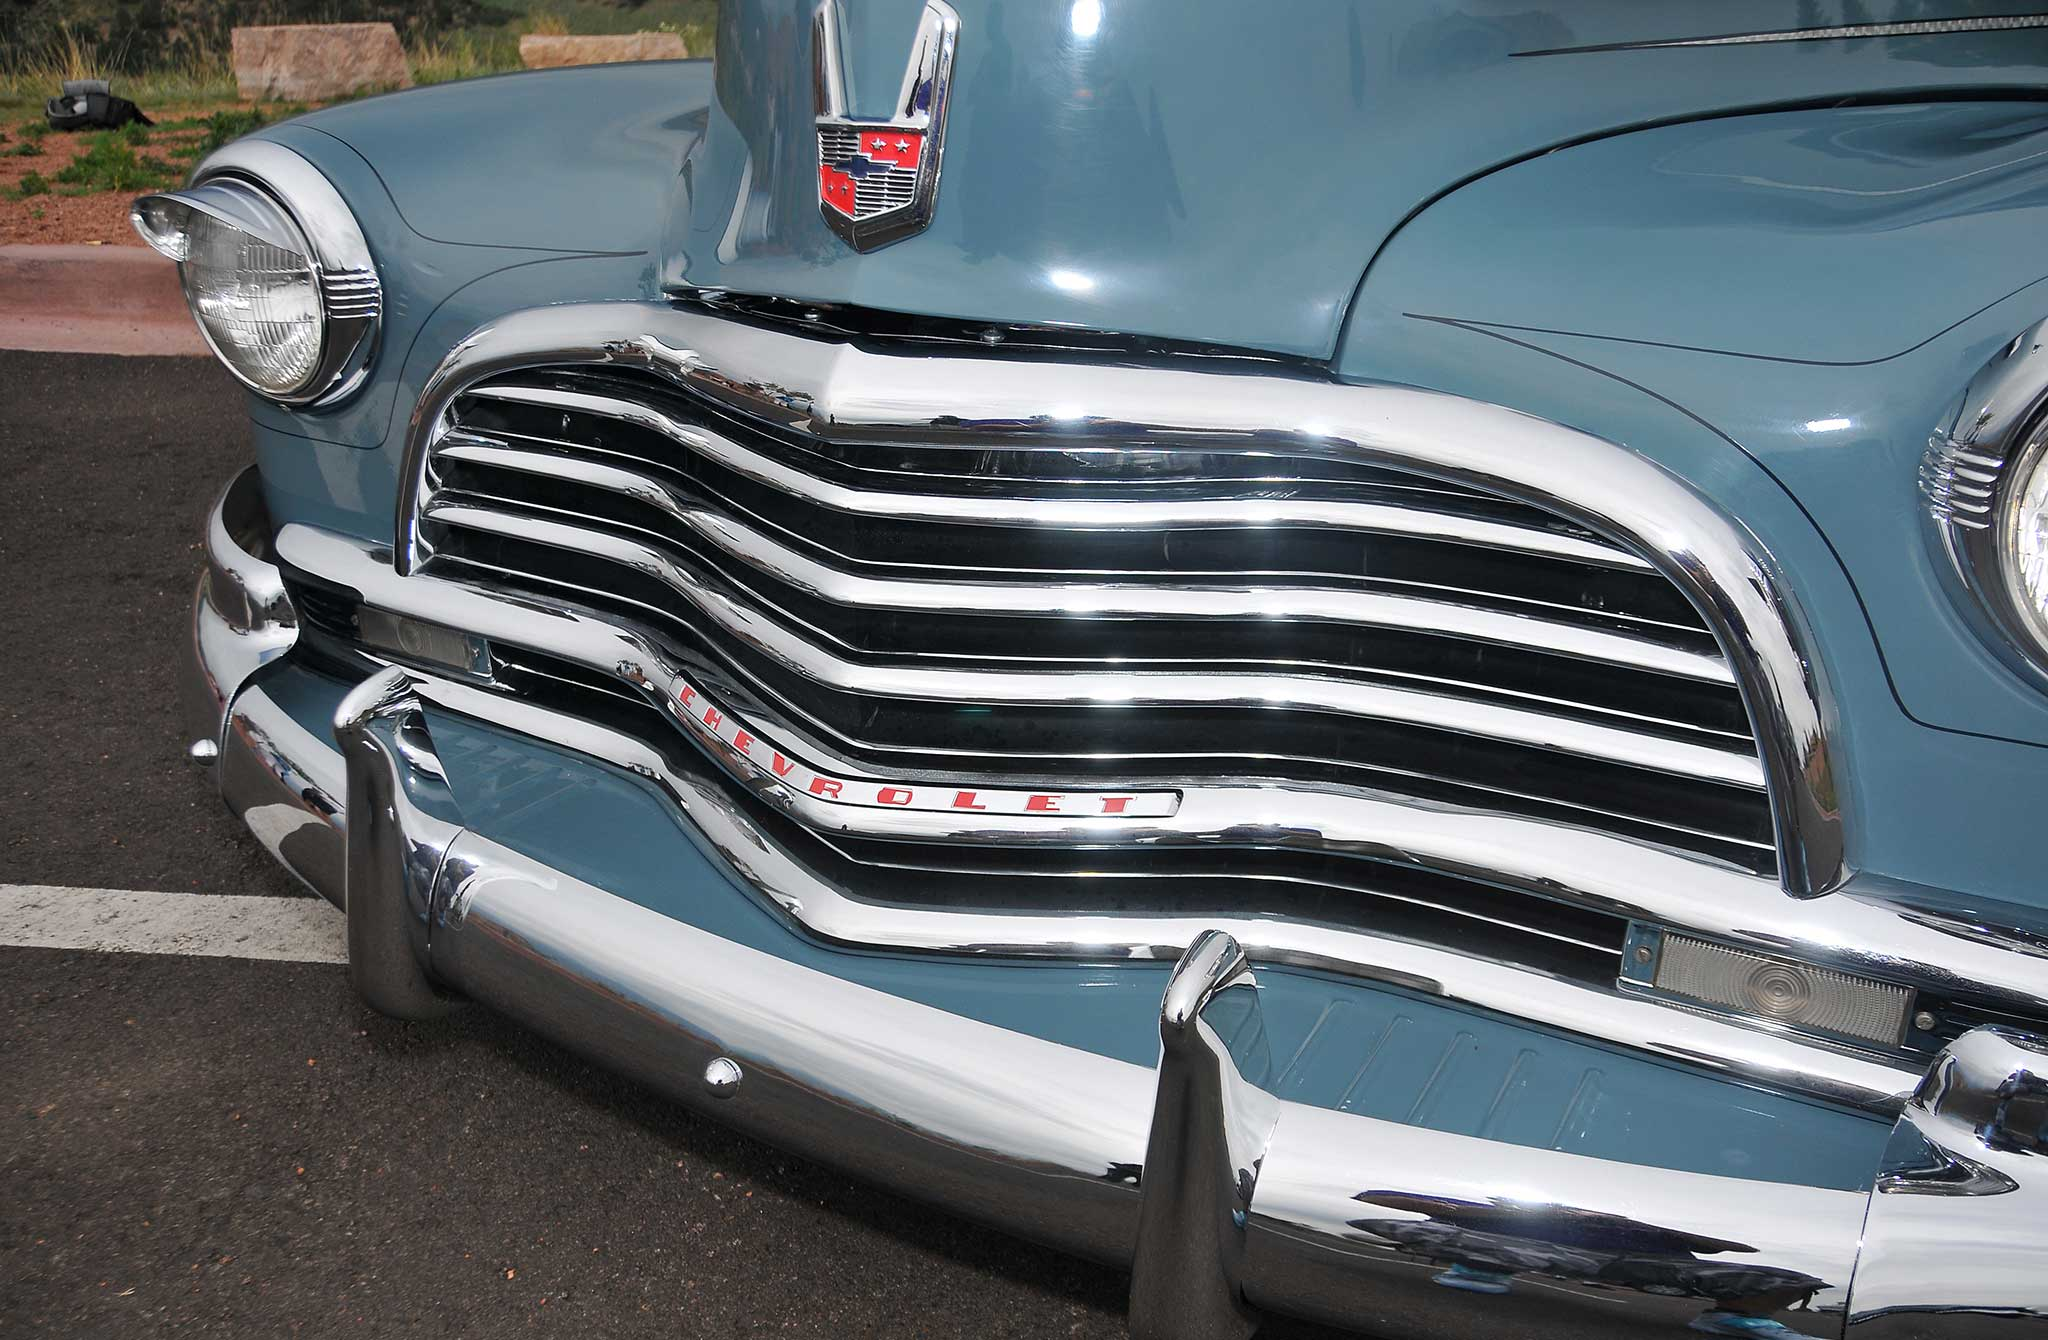 2015 Chevy Monte Carlo >> 1946 Chevrolet Fleetline - Let the Good Times Roll